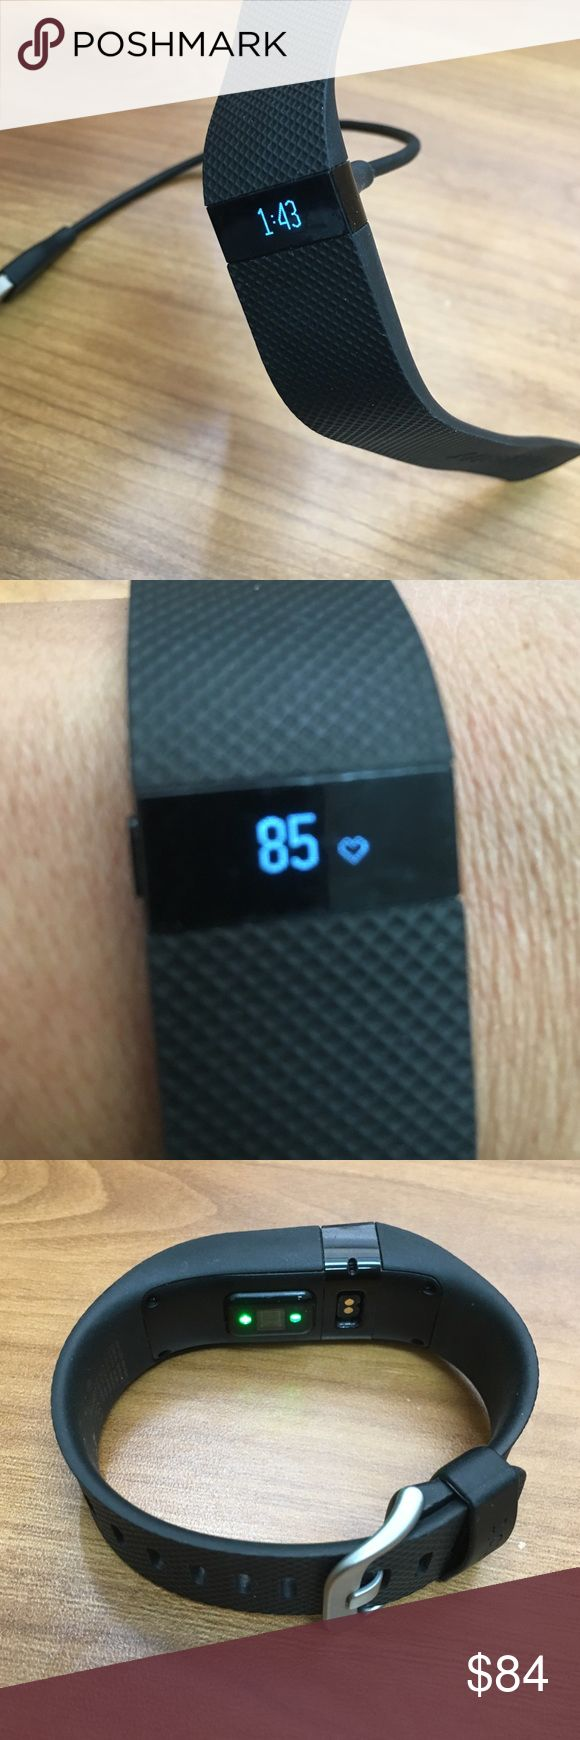 OFFER ME ❤️ Fitbit Charge HR Small Black ☀️ MAKE AN OFFER ☀️Not new! Please see pictures, good condition just normal wear on screen & belt. Ask before purchase Include charger and dongle. I charge this every night on my night Stand and don't get out of bed without it Price reflects condition High-performance wristband with automatic heart rate and activity tracking right on your wrist See heart rate to get more accurate calorie burn Track steps distance floors climbed, sleep quality…